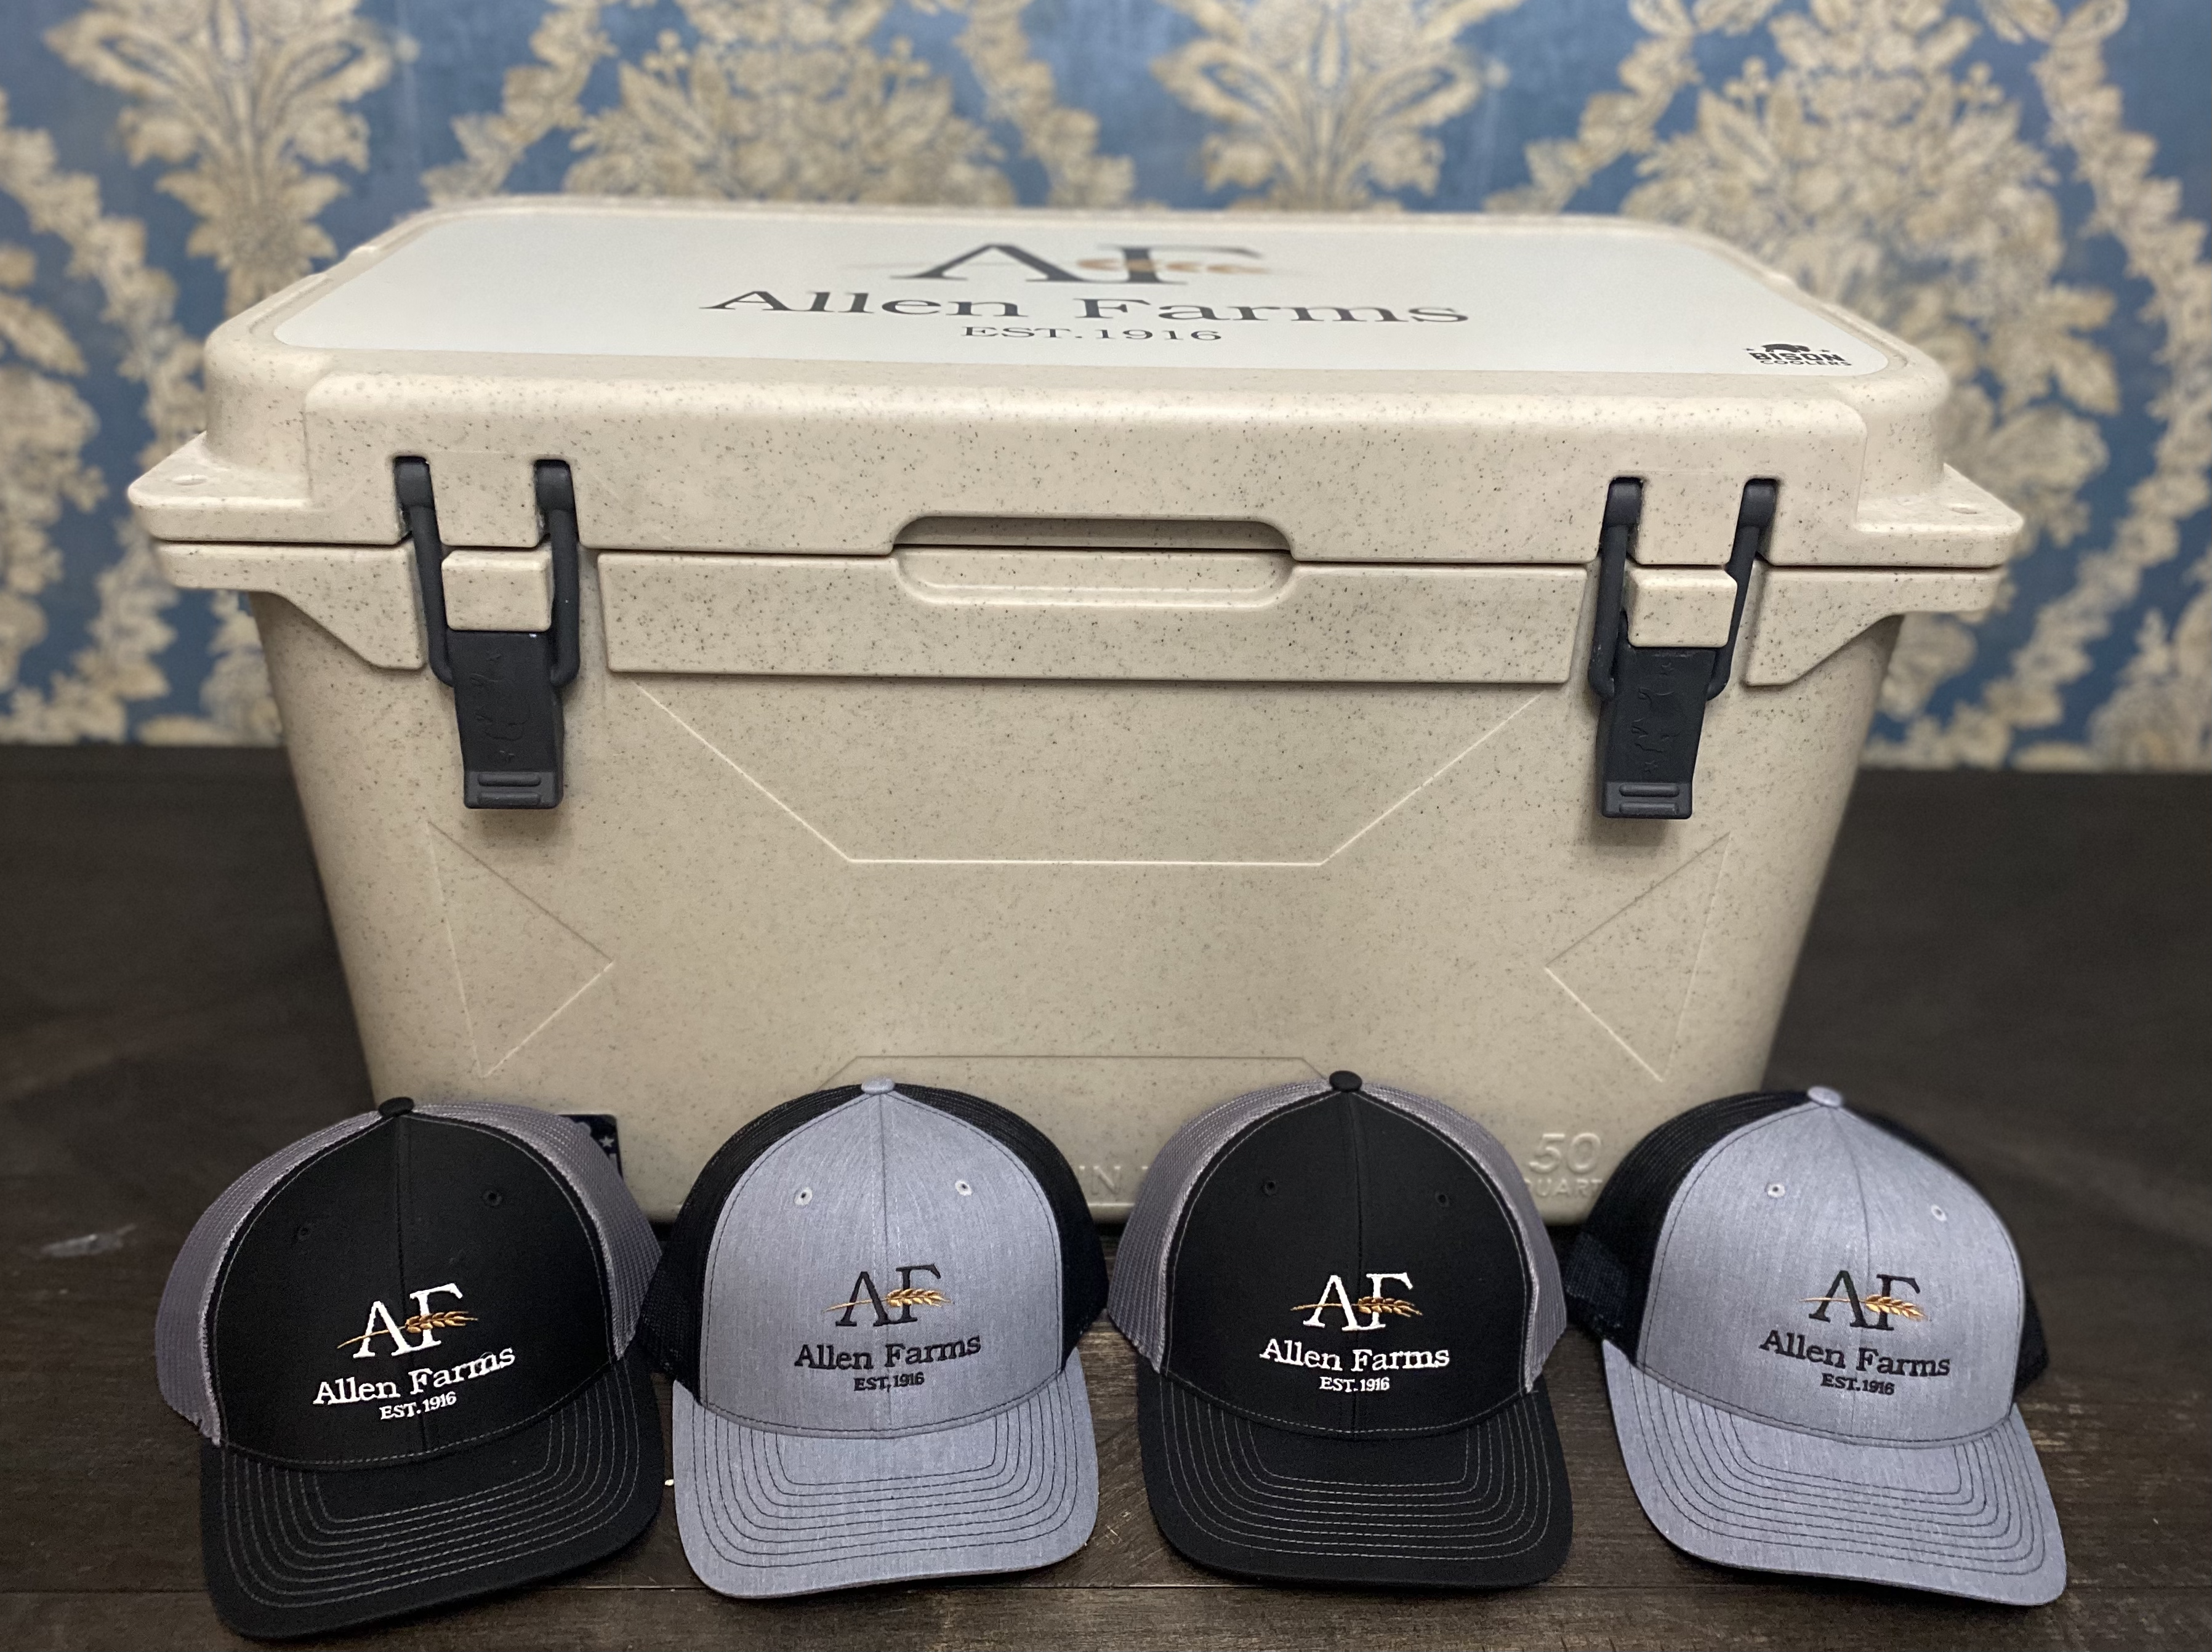 Some Our Favorite Farm Swag!